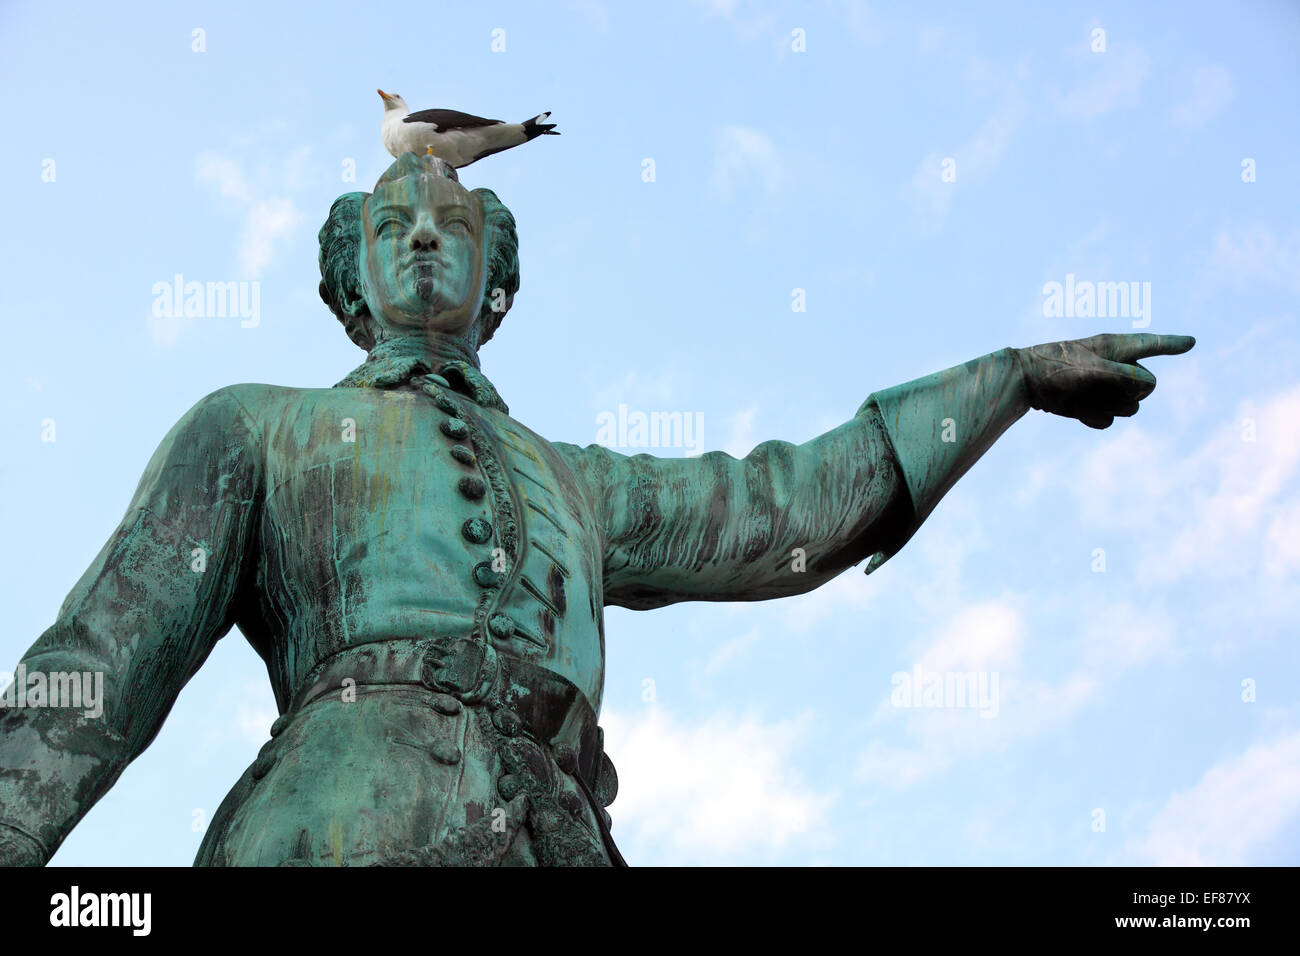 Statue of Karl XII king of Sweden in stockholm. Sweden. - Stock Image